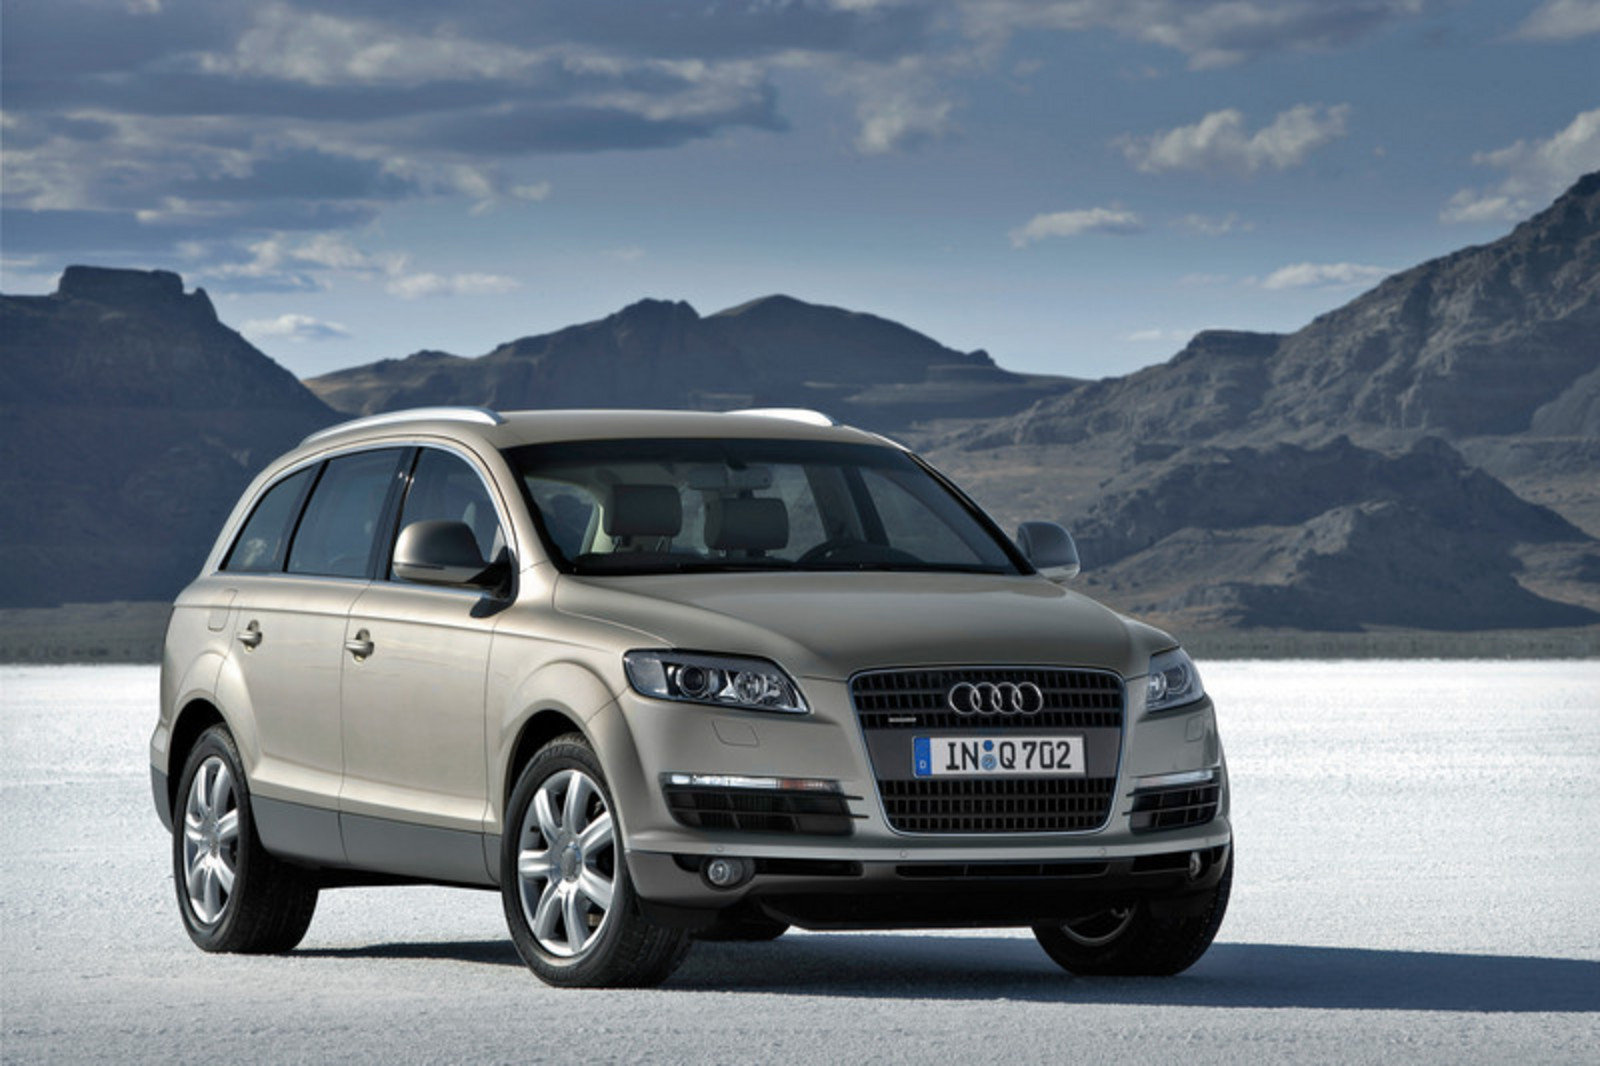 2007 audi q7 picture 45050 car review top speed. Black Bedroom Furniture Sets. Home Design Ideas